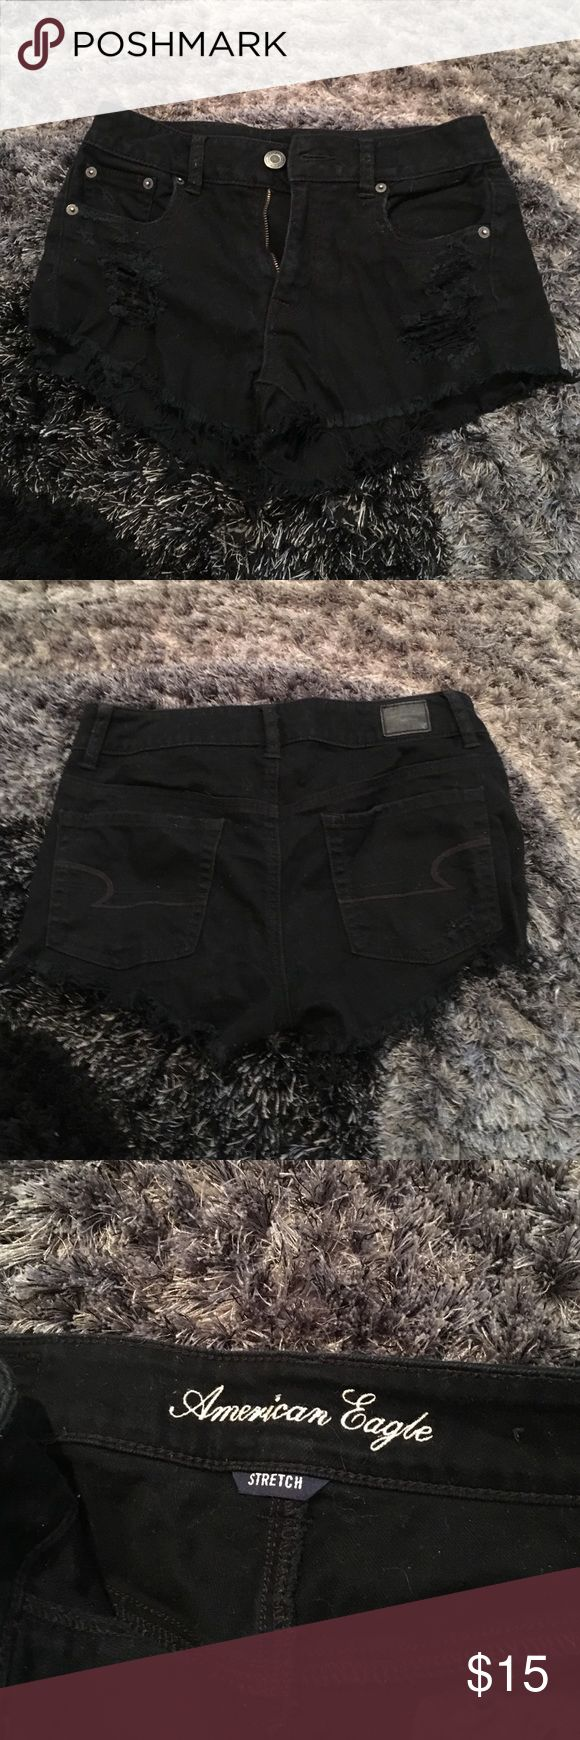 American eagle black denim ripped shorts American eagle black denim ripped shorts. Worn a few times. In really good condition! American Eagle Outfitters Shorts Jean Shorts